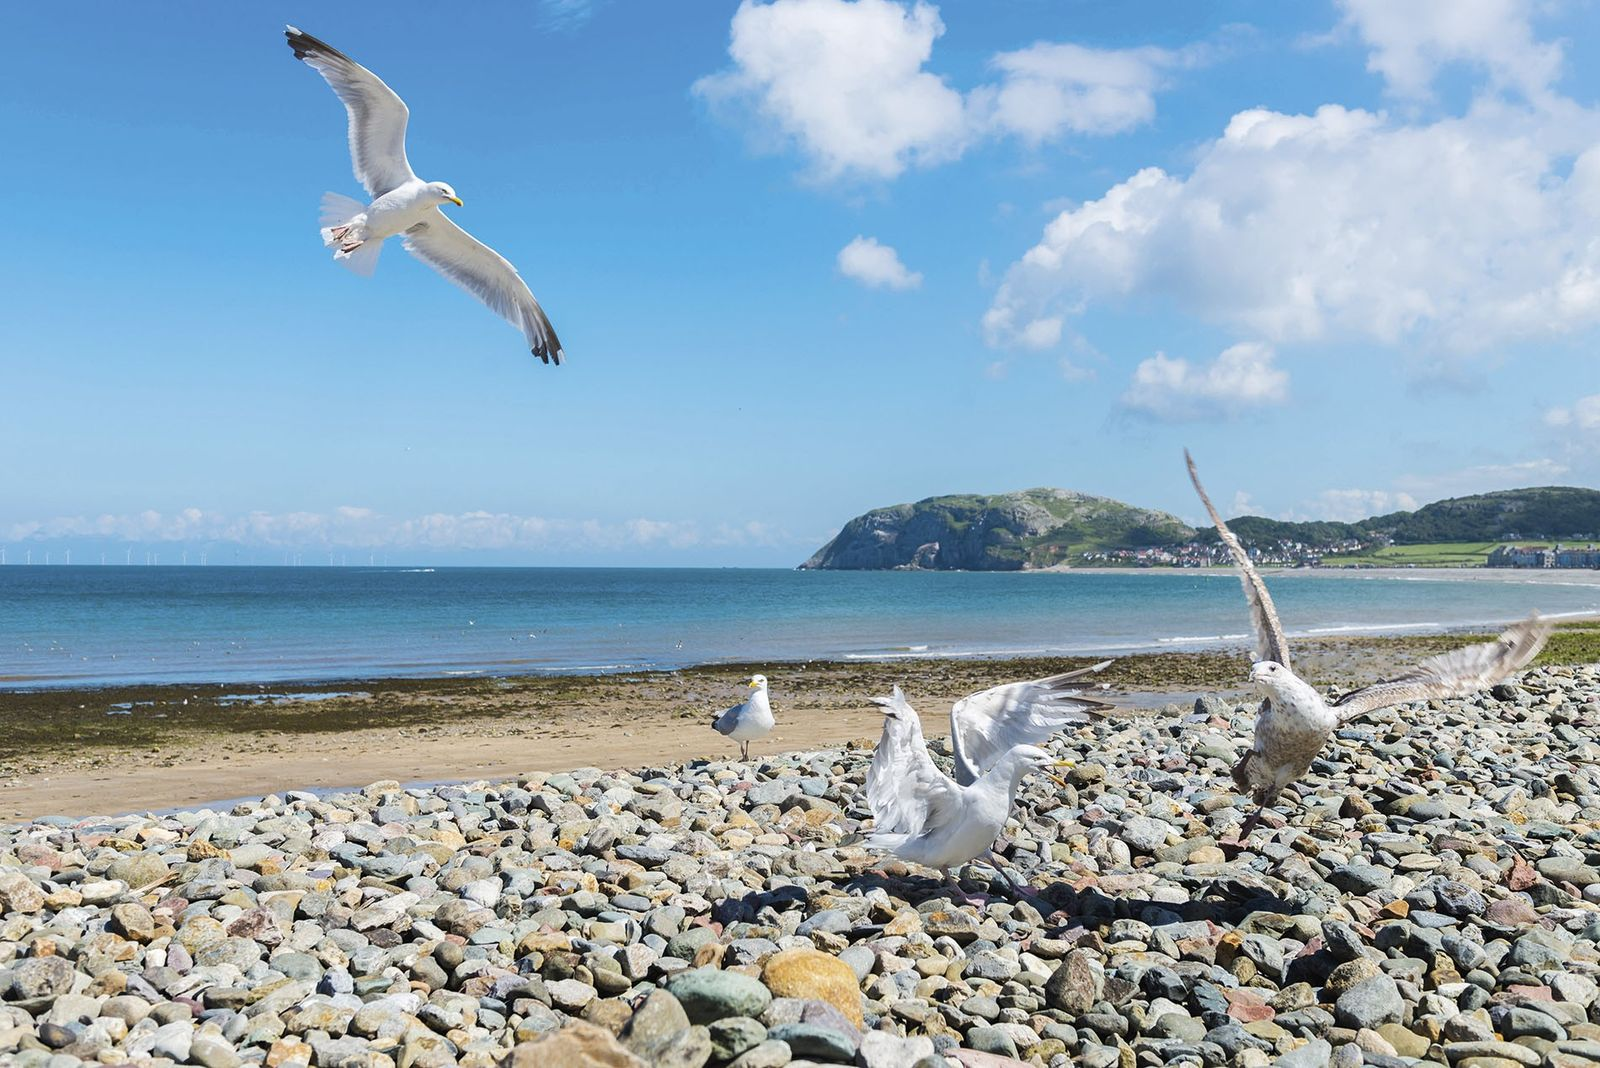 A traveller's guide to Llandudno, North Wales